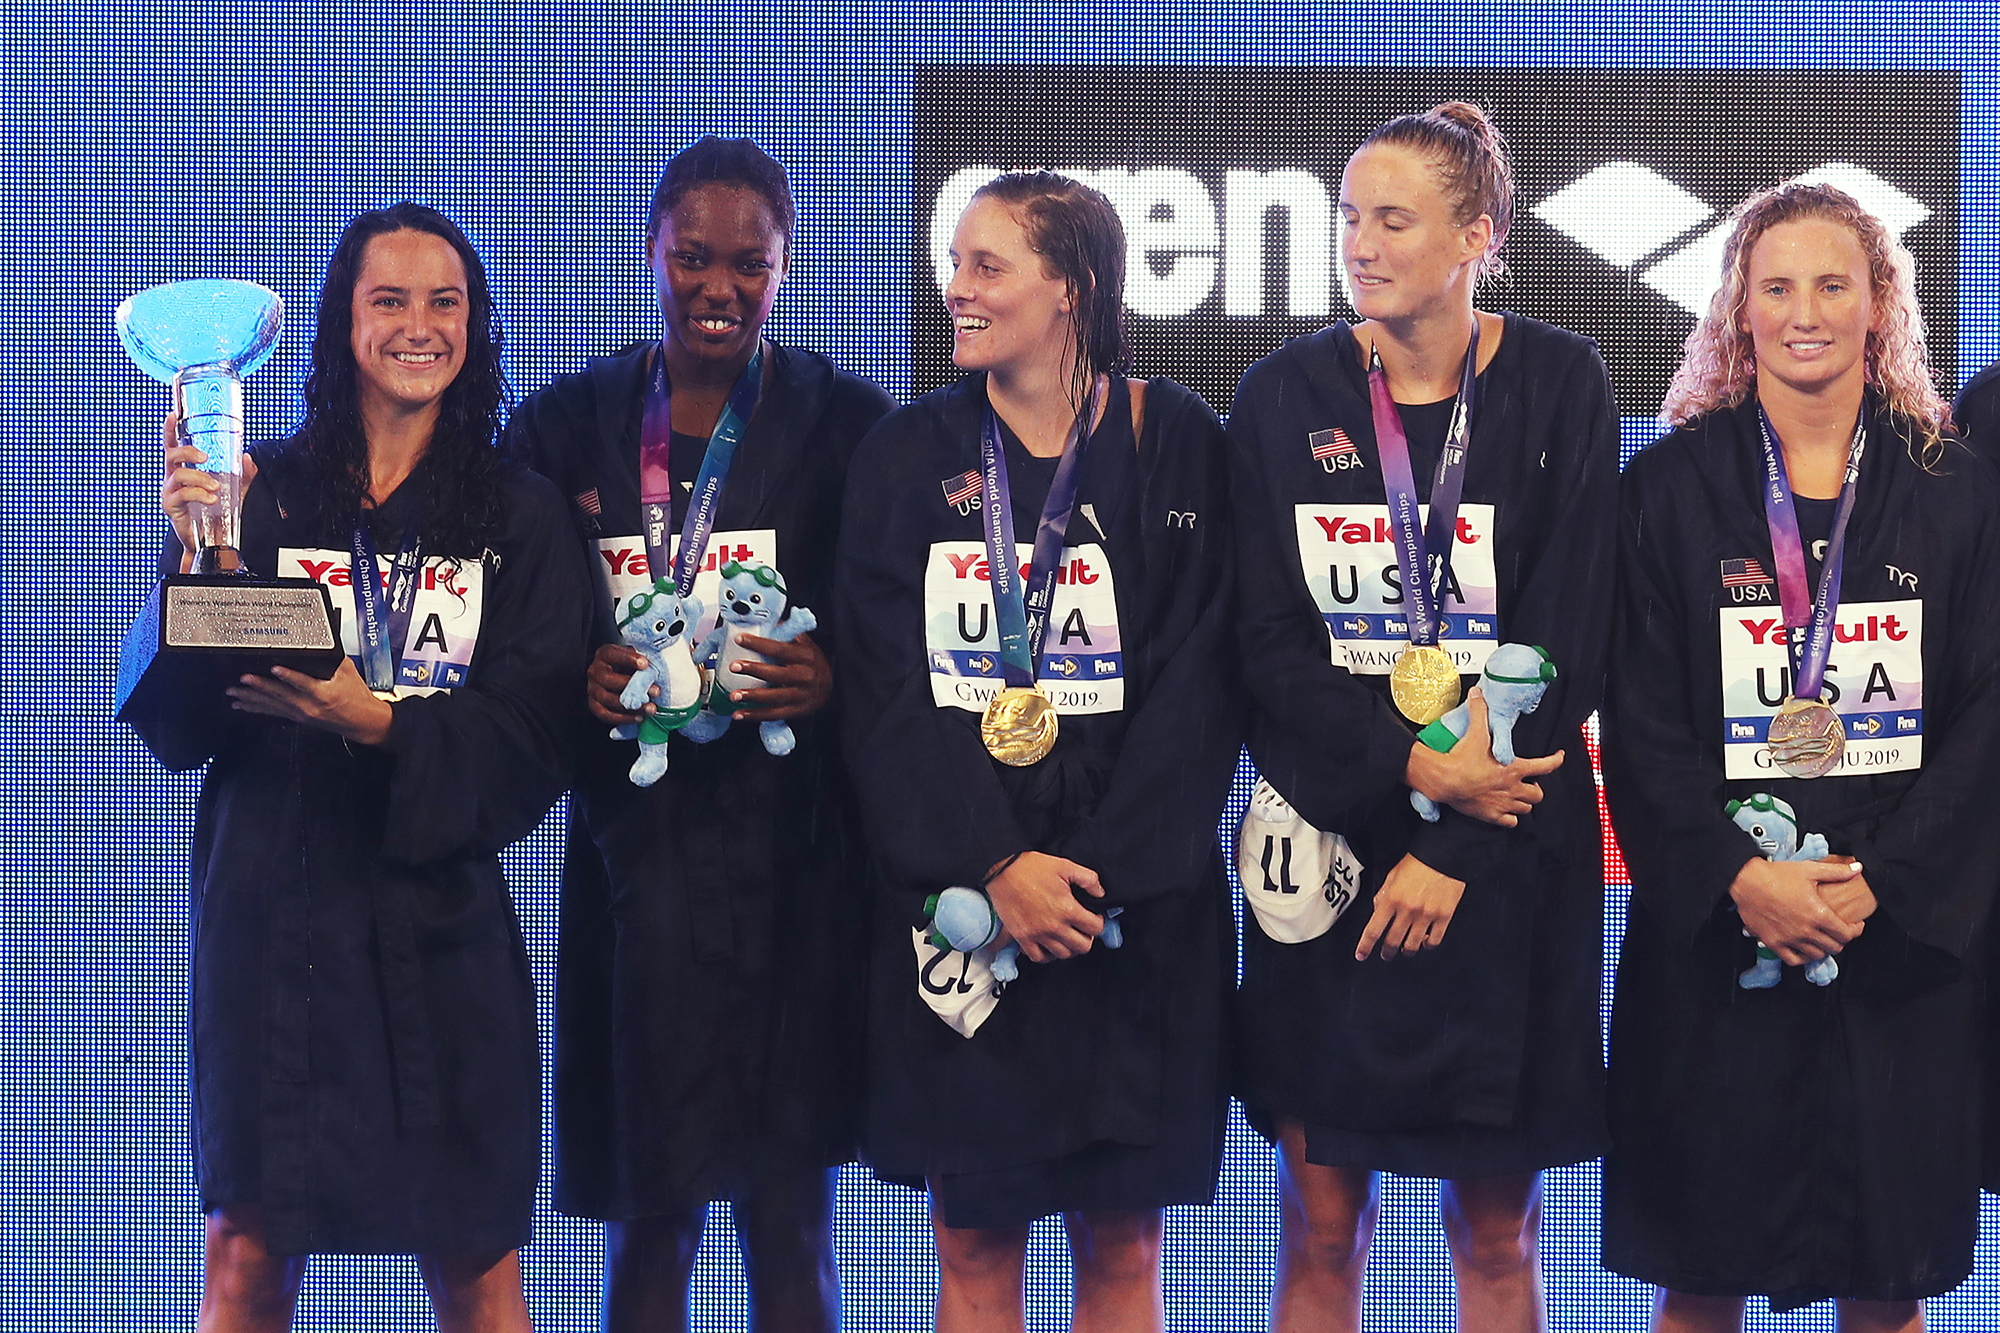 Margaret Steffens (L) of the United States poses with the winner's trophy alongside her teammates during the medal ceremony for the Women's Water Polo